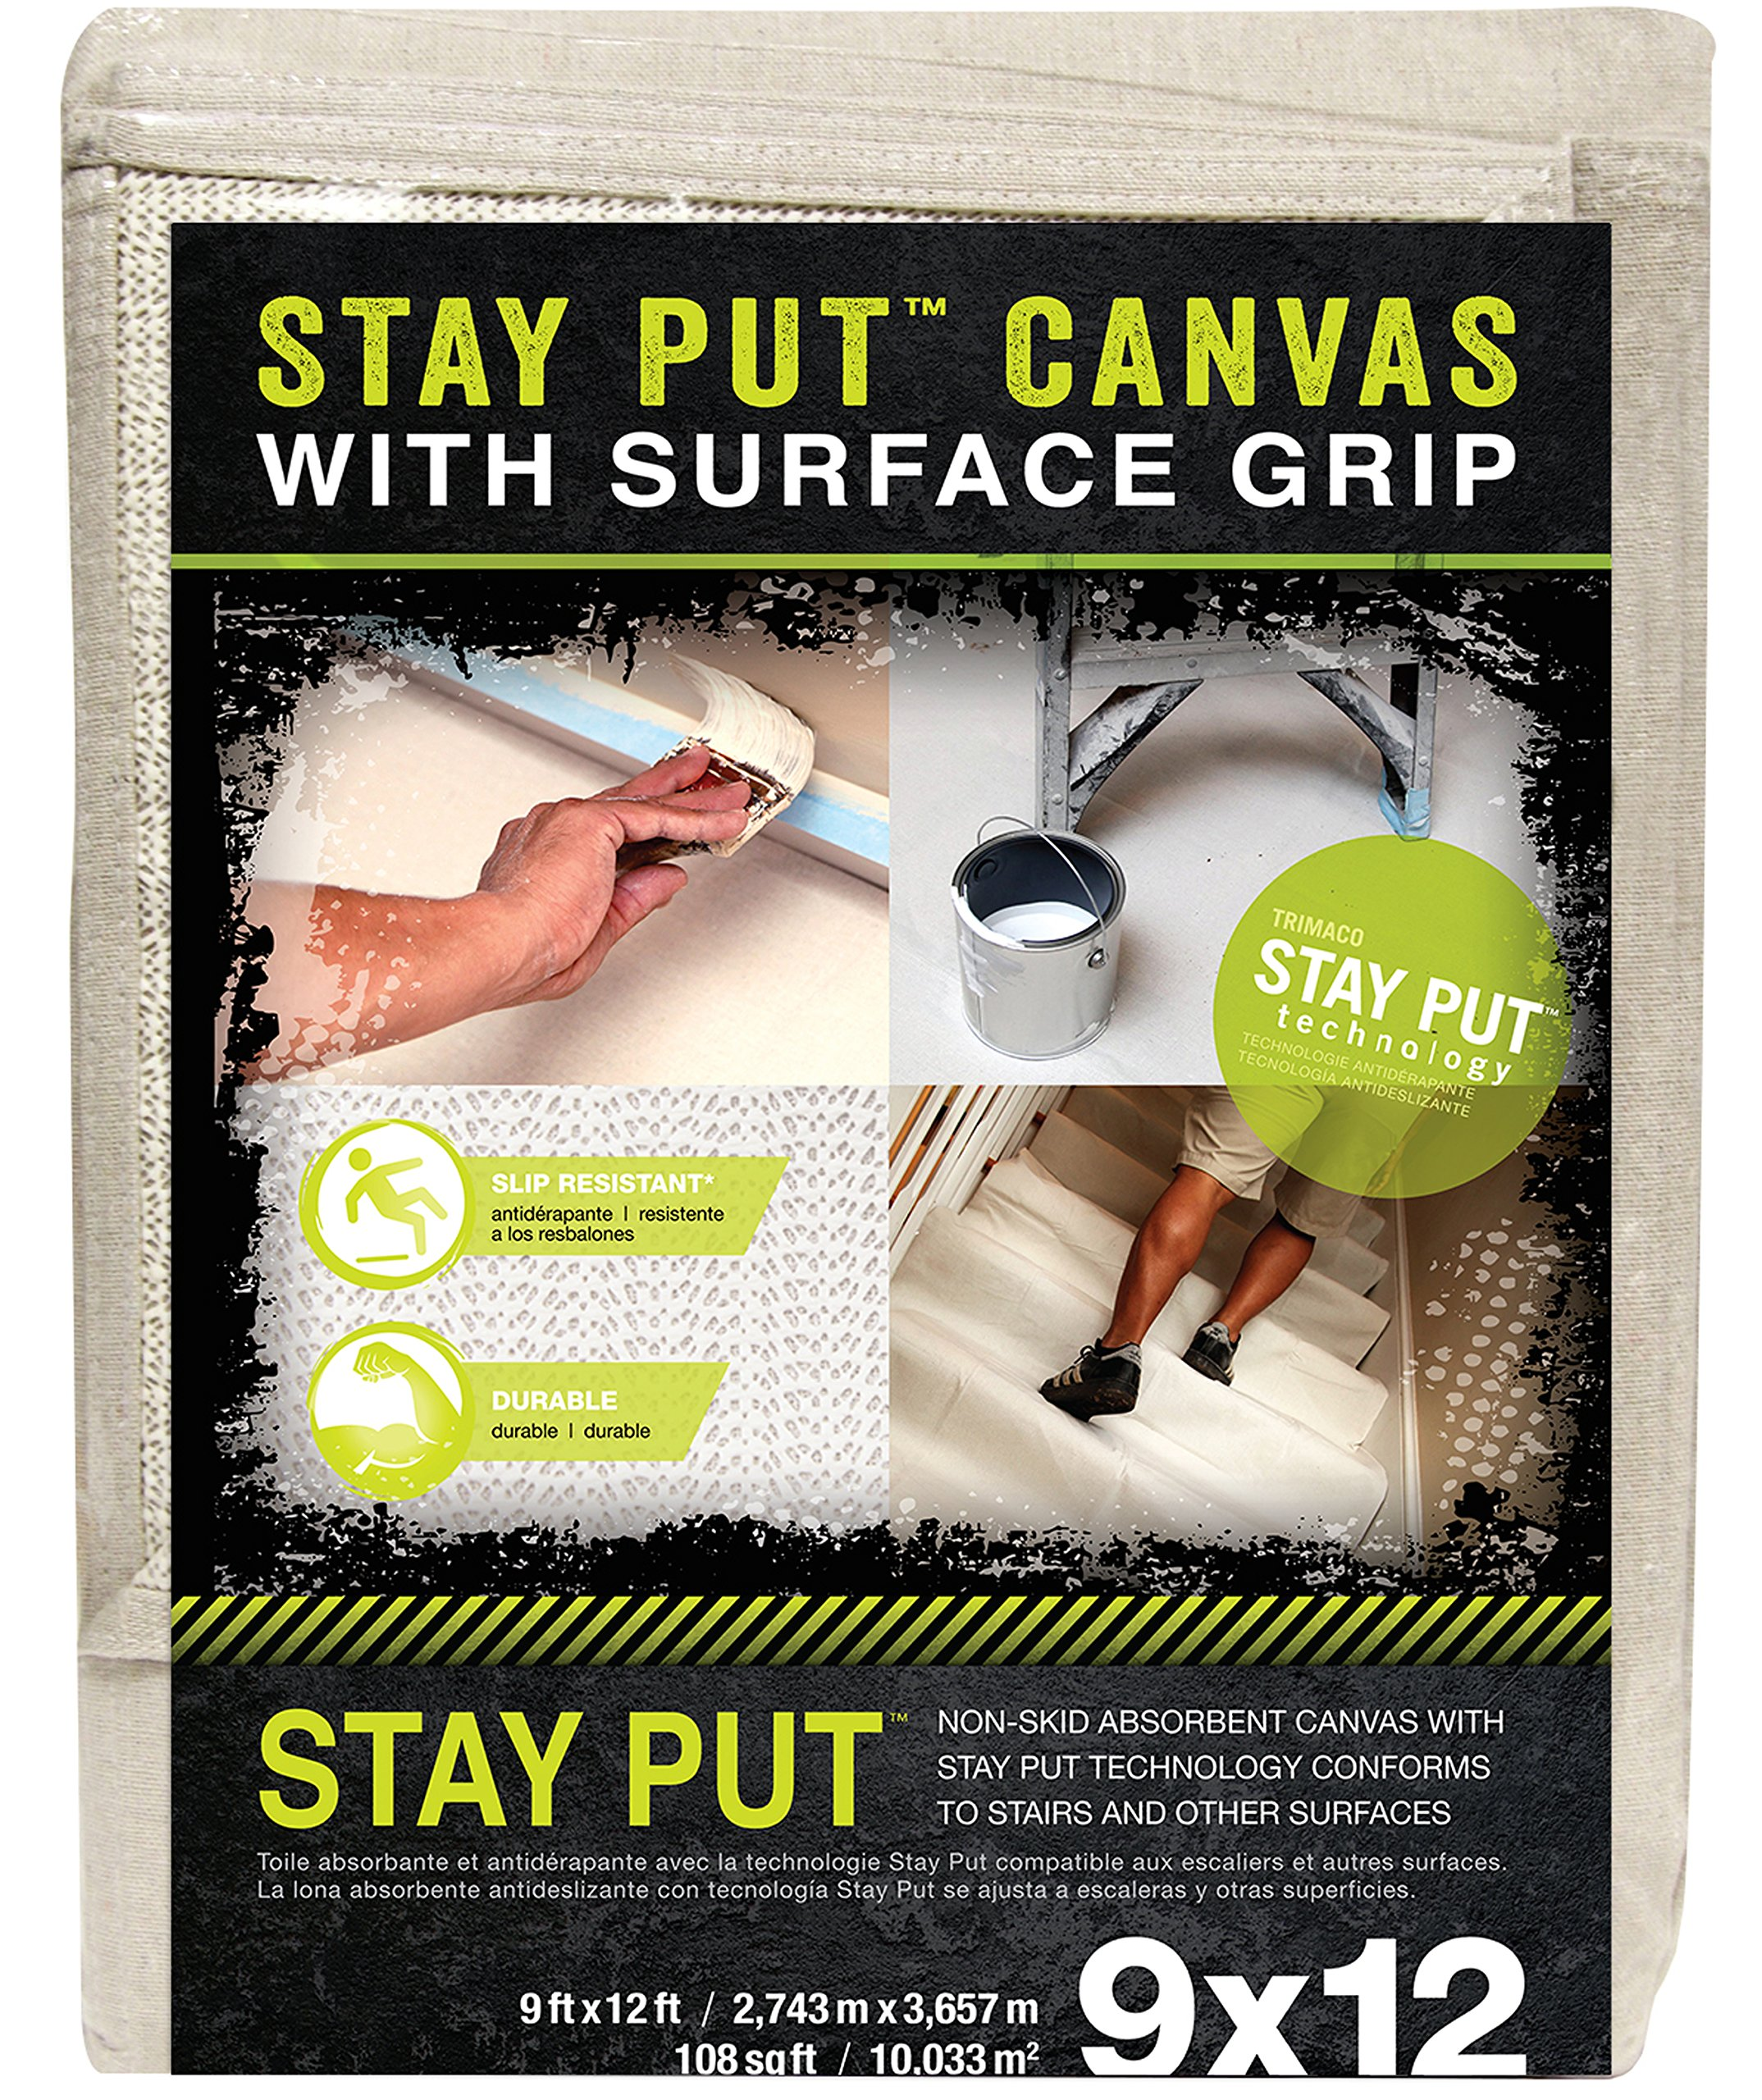 Stay Put 04311 Canvas Drop Cloth with Slip Resistant Surface Grip, 9' x 12'